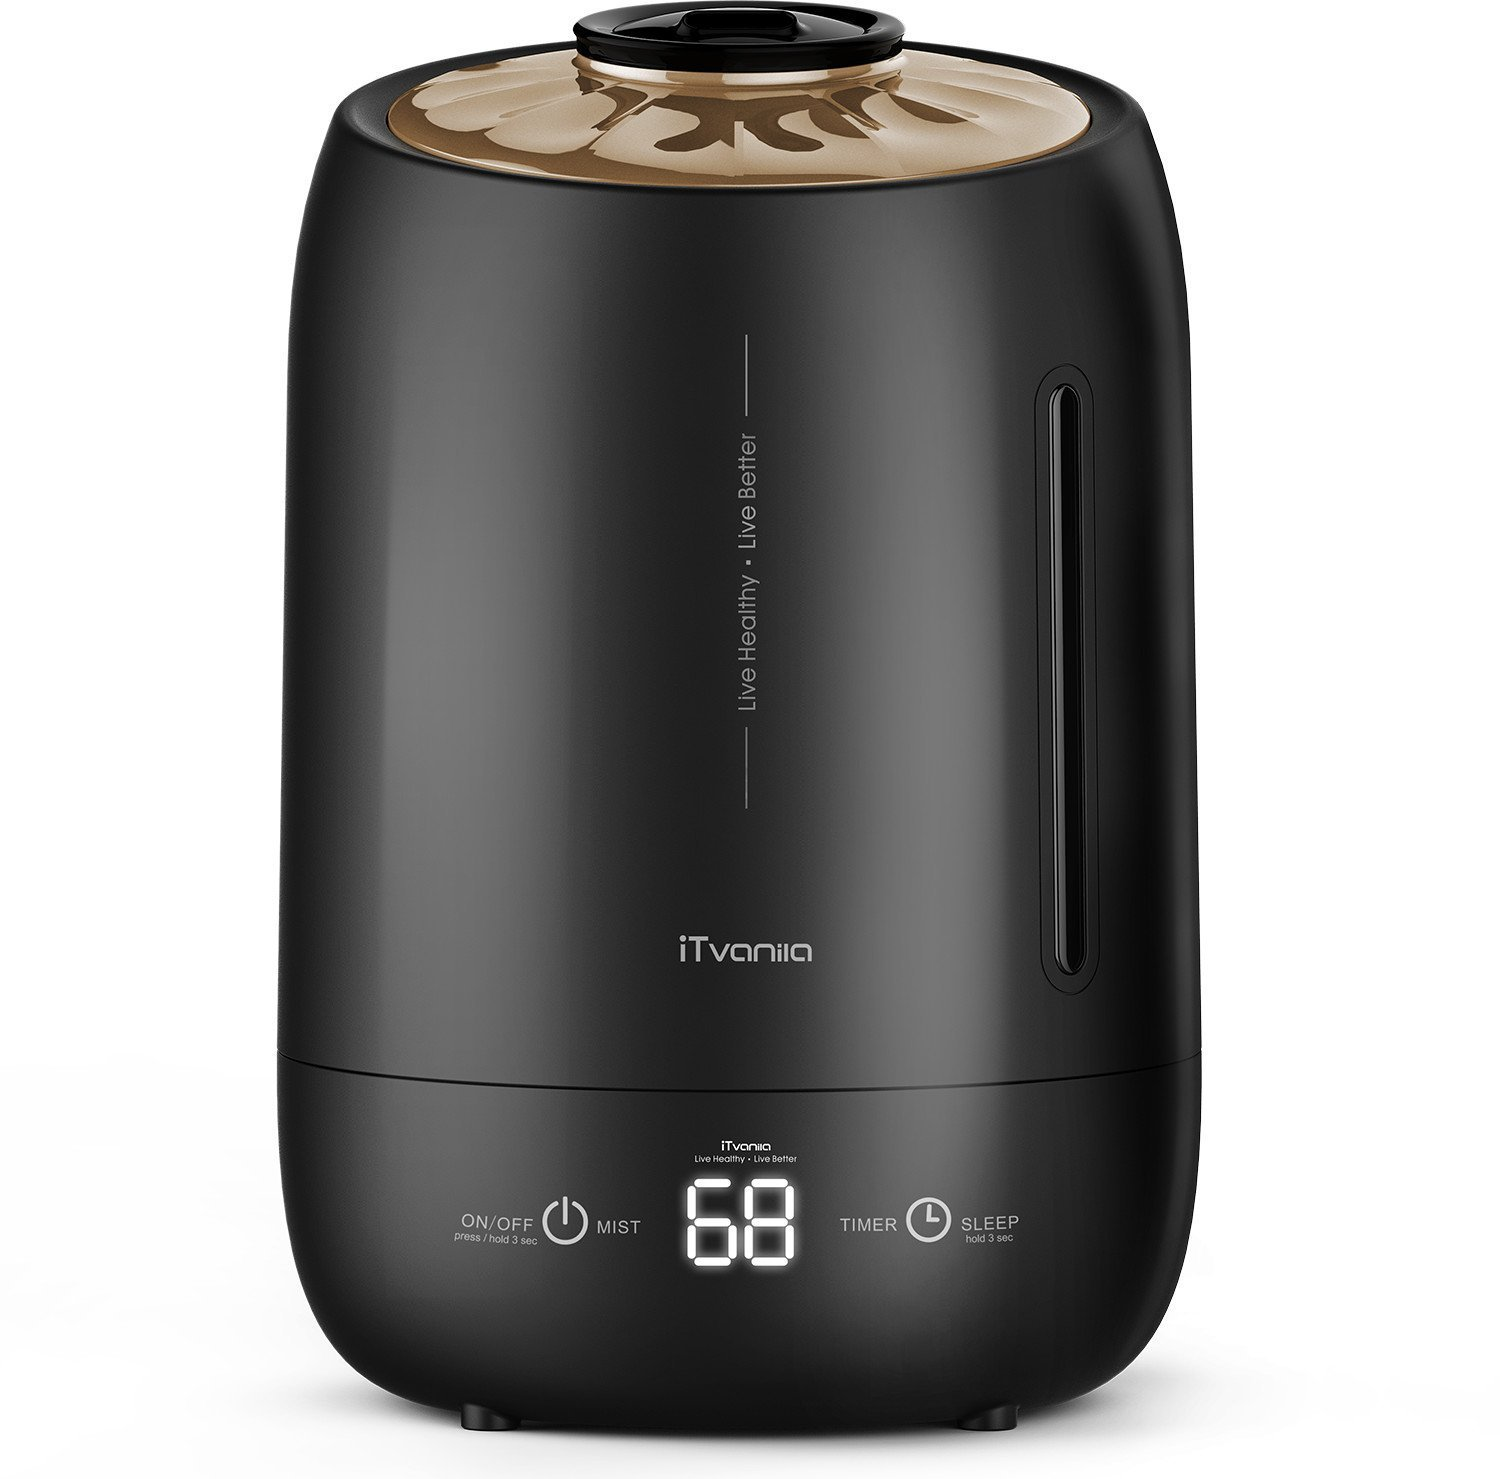 iTvanila Cool Mist Humidifier, 5L Ultrasonic Air Humidifier, Single Room Humidifiers with Auto Shut-Off, Whisper Quiet Black (Black)